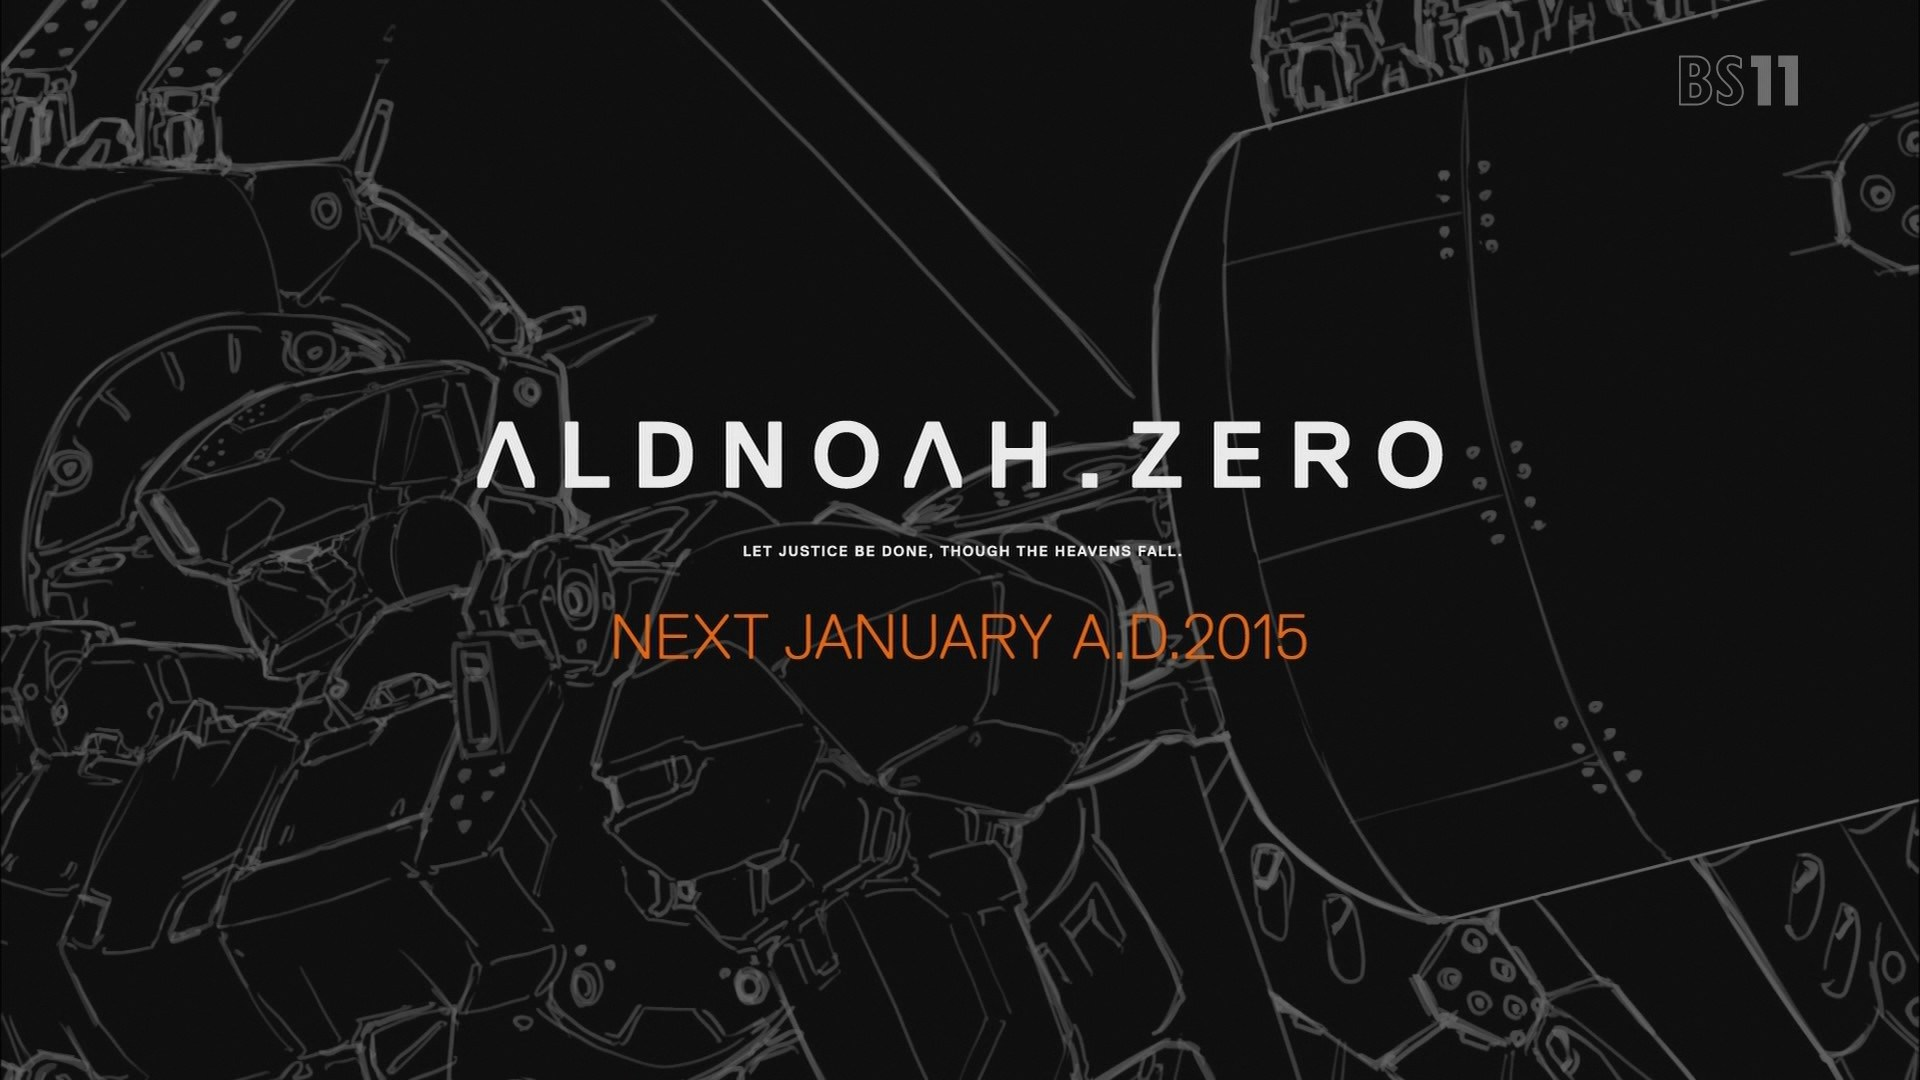 Aldnoah.Zero-2nd-Season-Slated-for-Winter-2015-haruhichan.com-アルドノア・ゼロ-anime-aldnoah.zero-2-winter-2015-anime